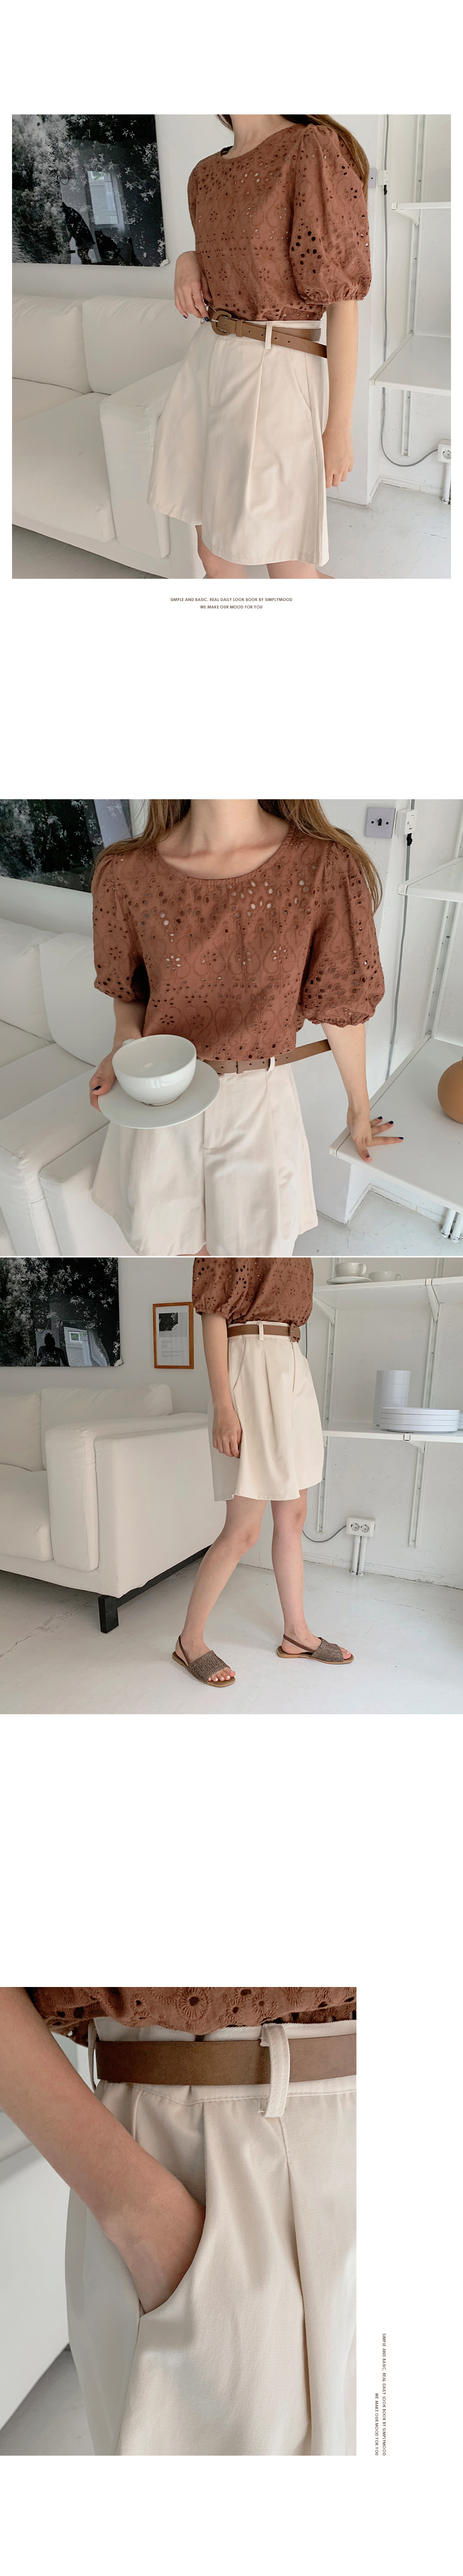 Levito Summer Daily Two Piece